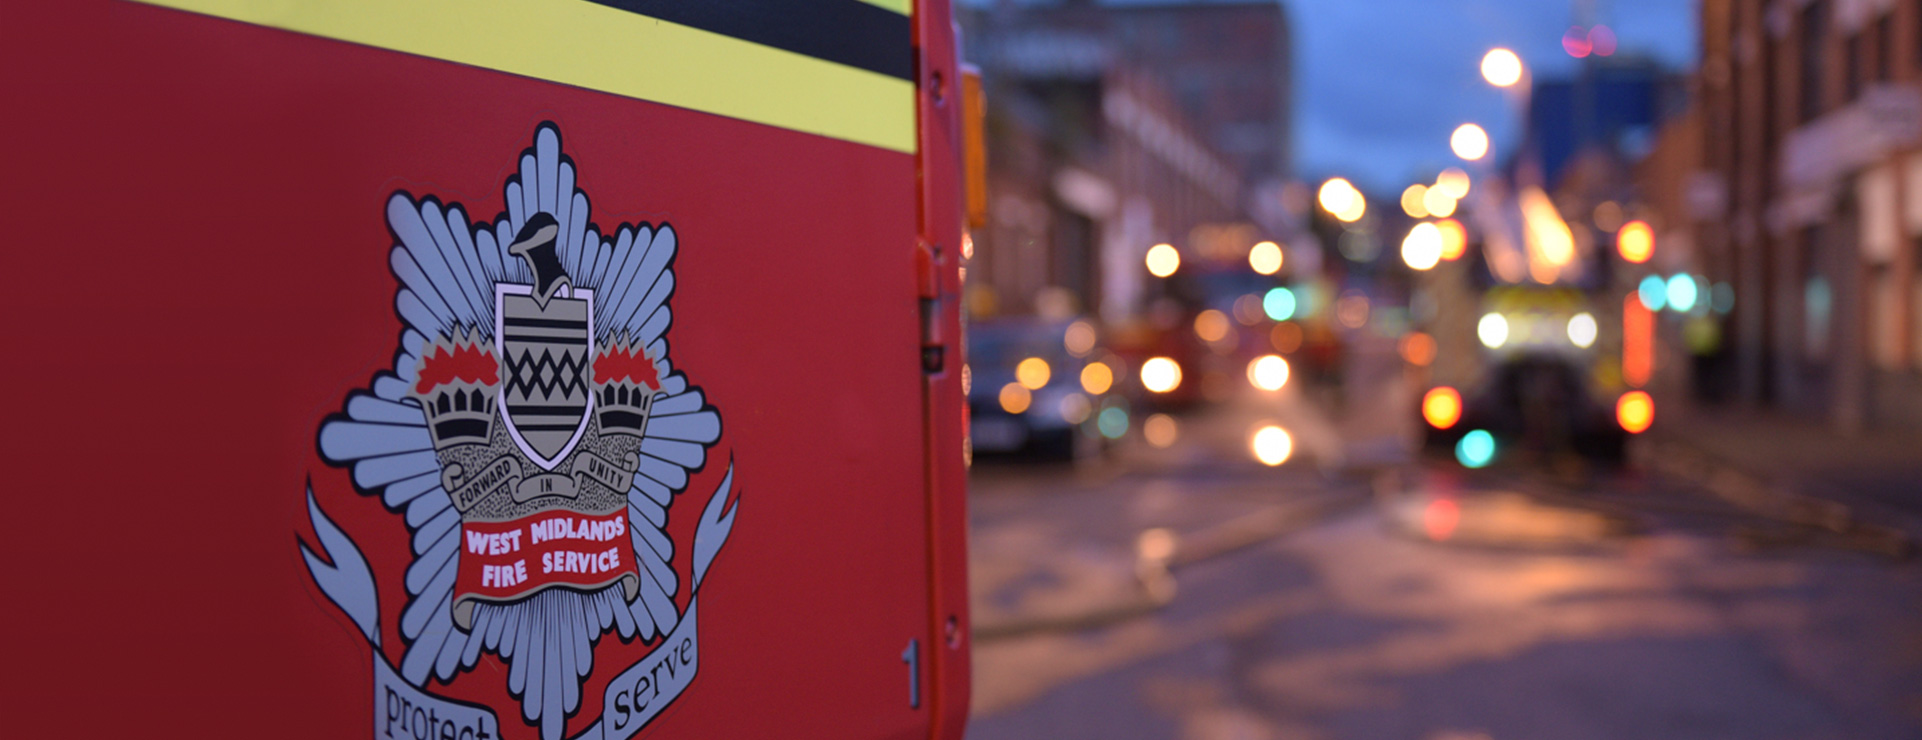 West Midlands Fire Service case study